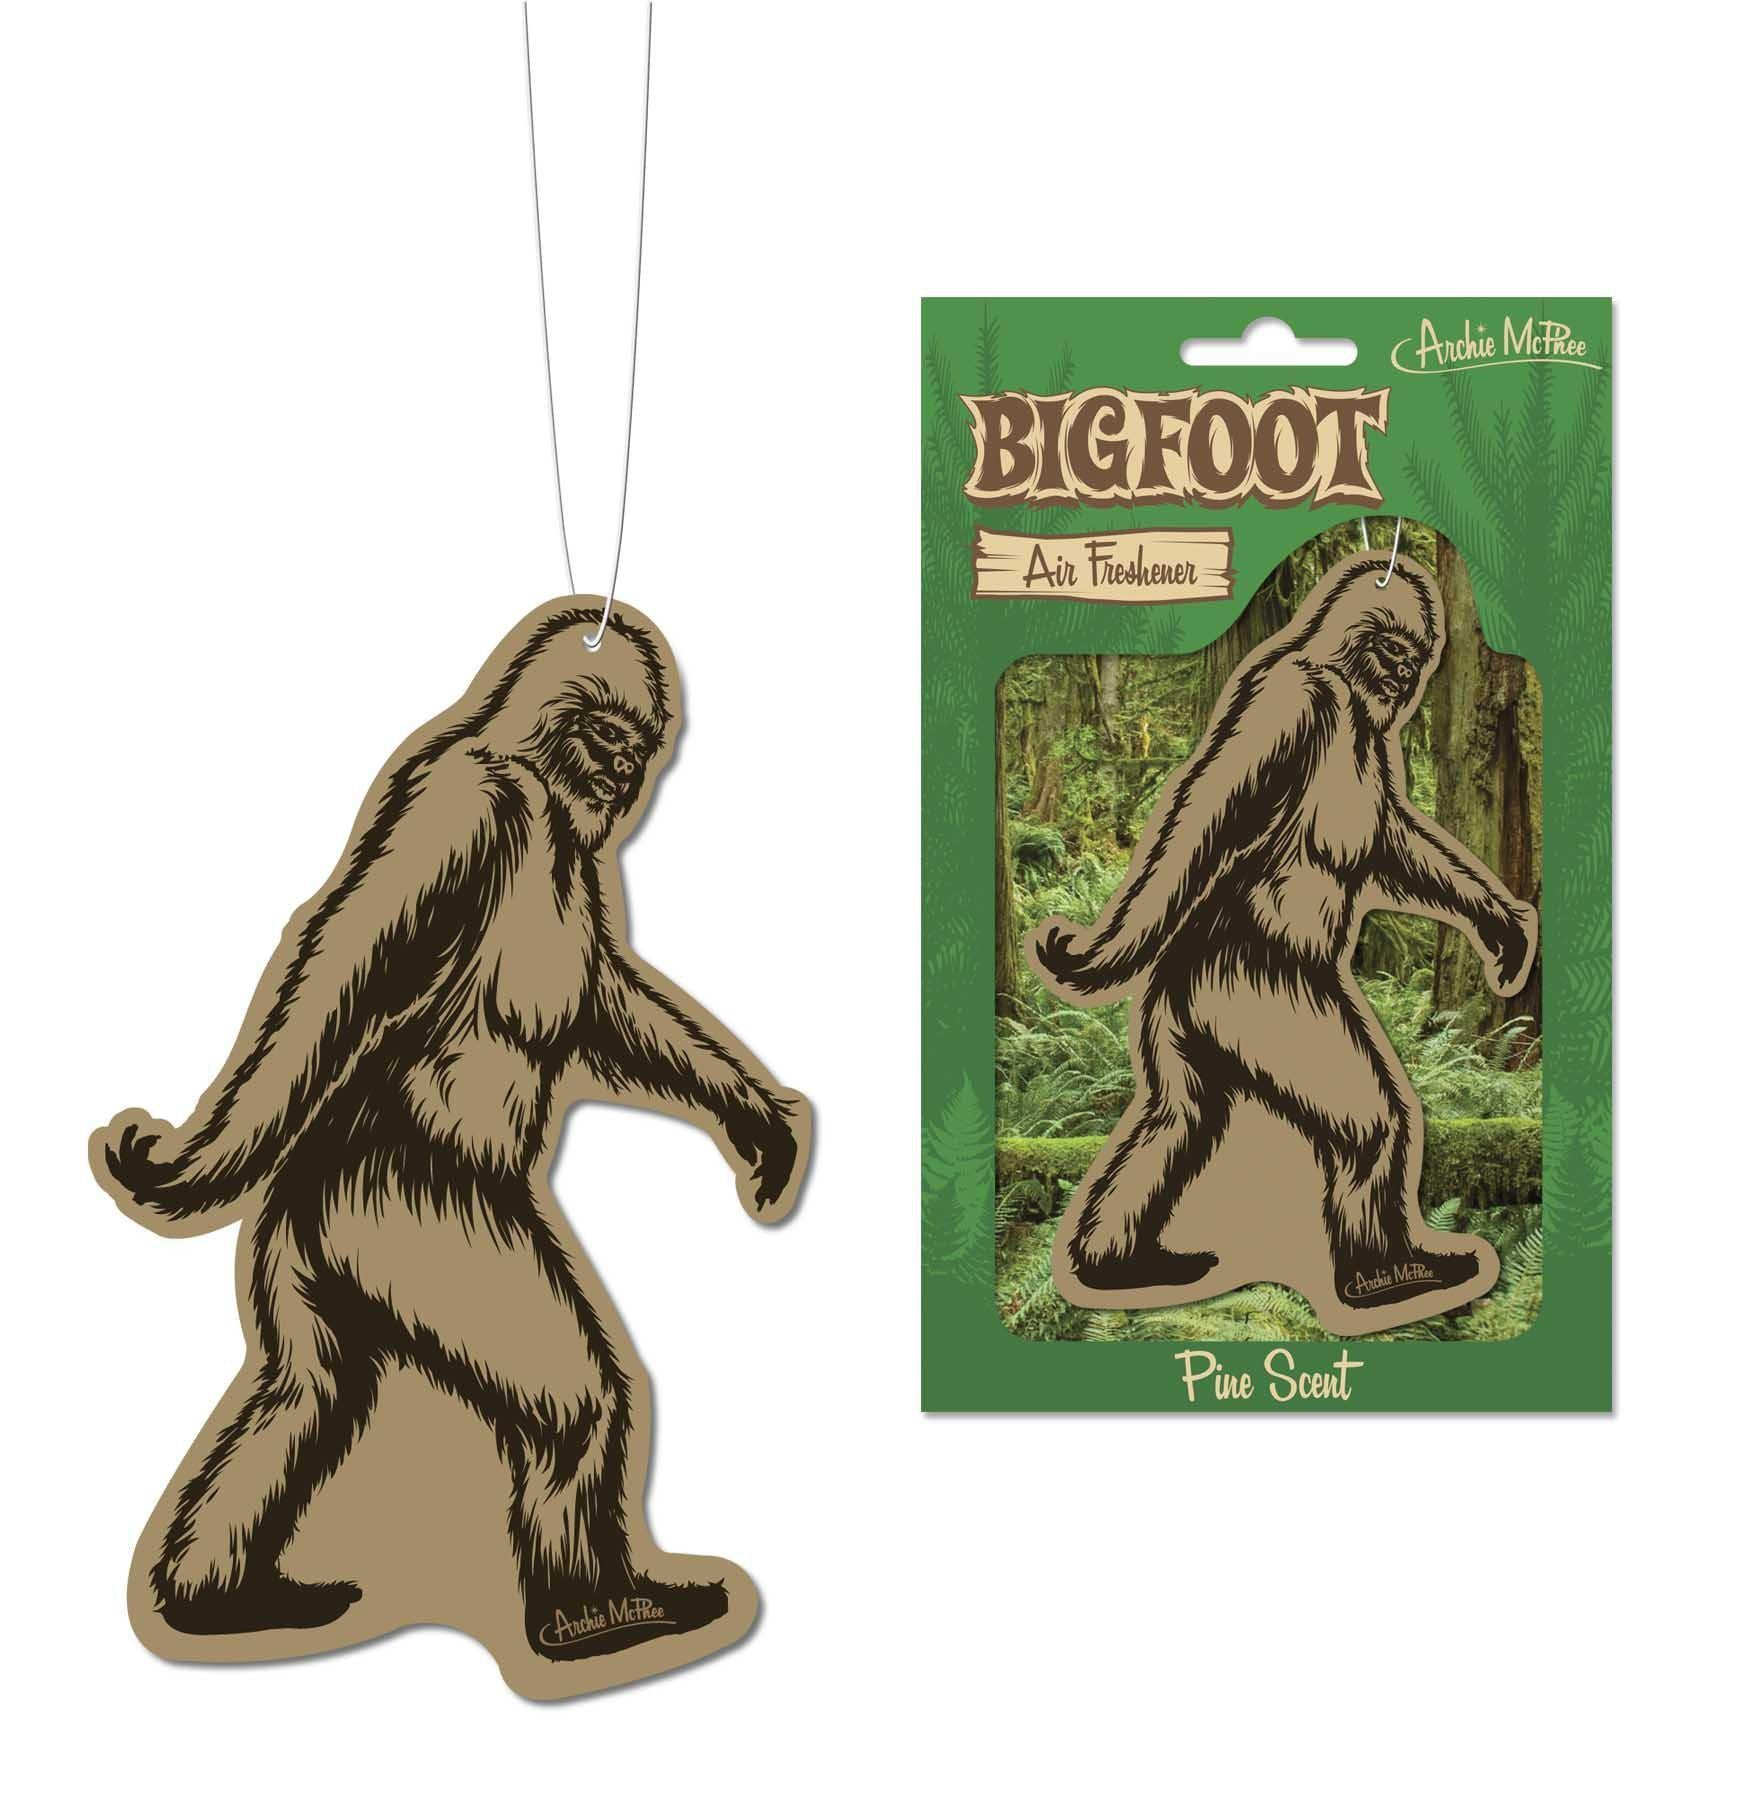 Bigfoot Air Freshener by Archie McPhee - Shop GagWorks.com